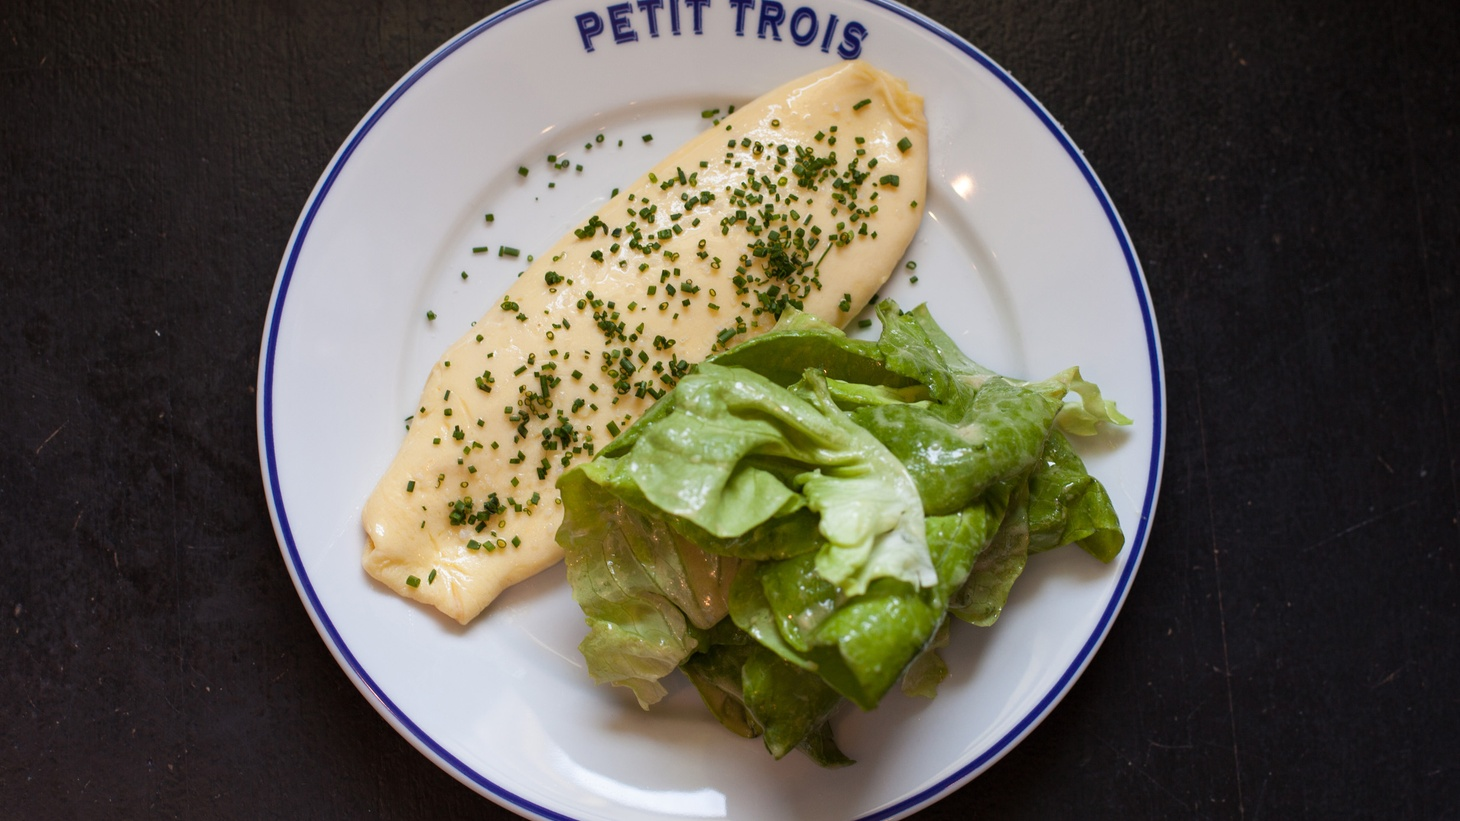 Jonathan Gold reviews Petit Trois, Chef Ludo's new casual french bistro in Hollywood.